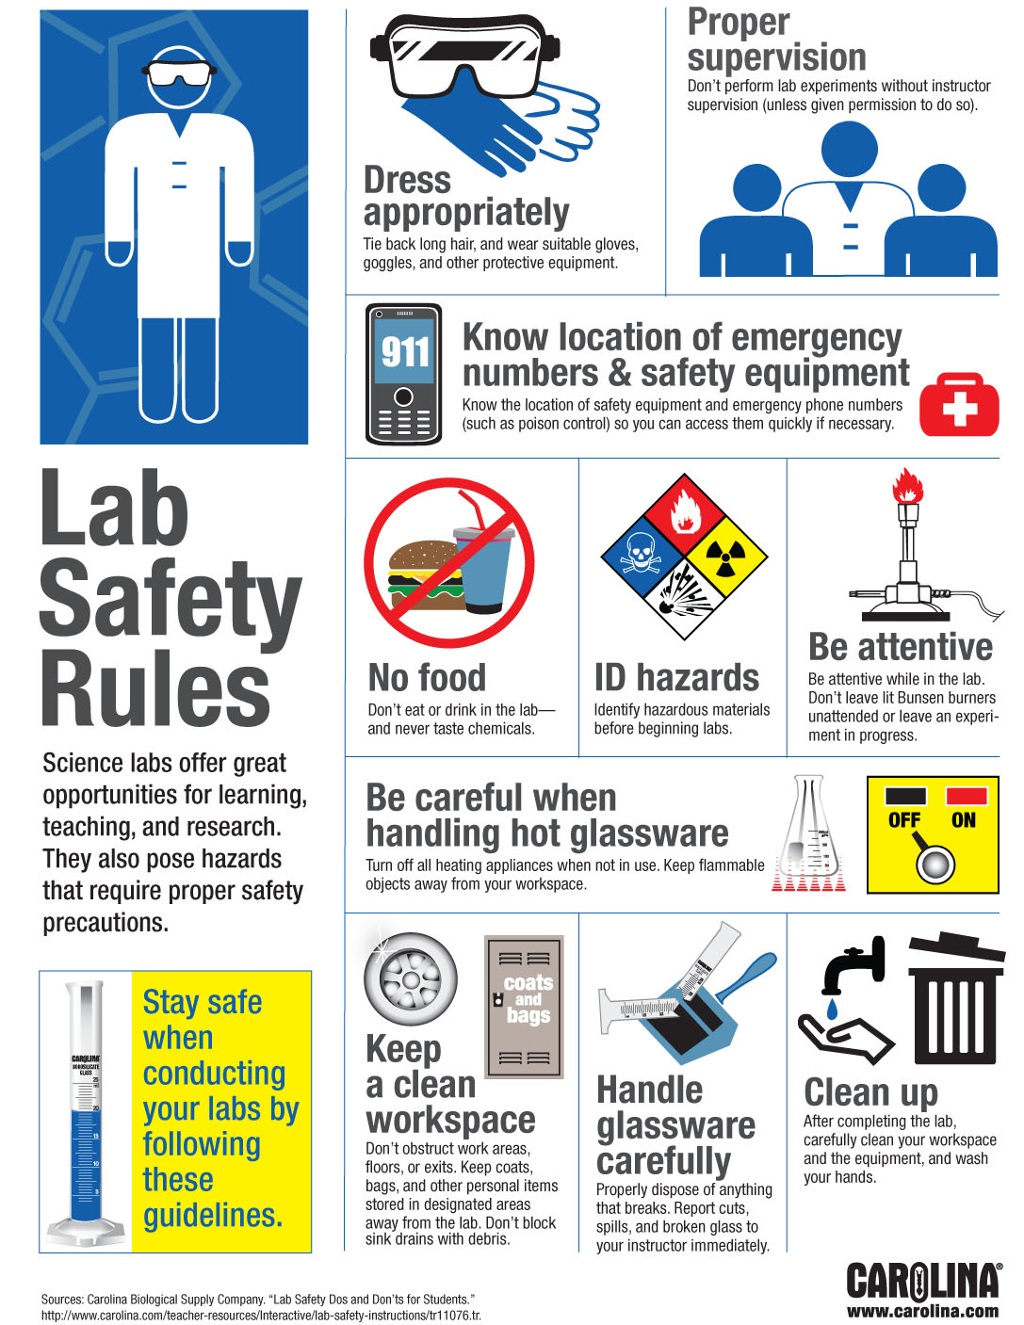 lab safety rules infographic science chemistry safe students educational laboratory labs equipment posters poster classroom precautions physics tools experience fun